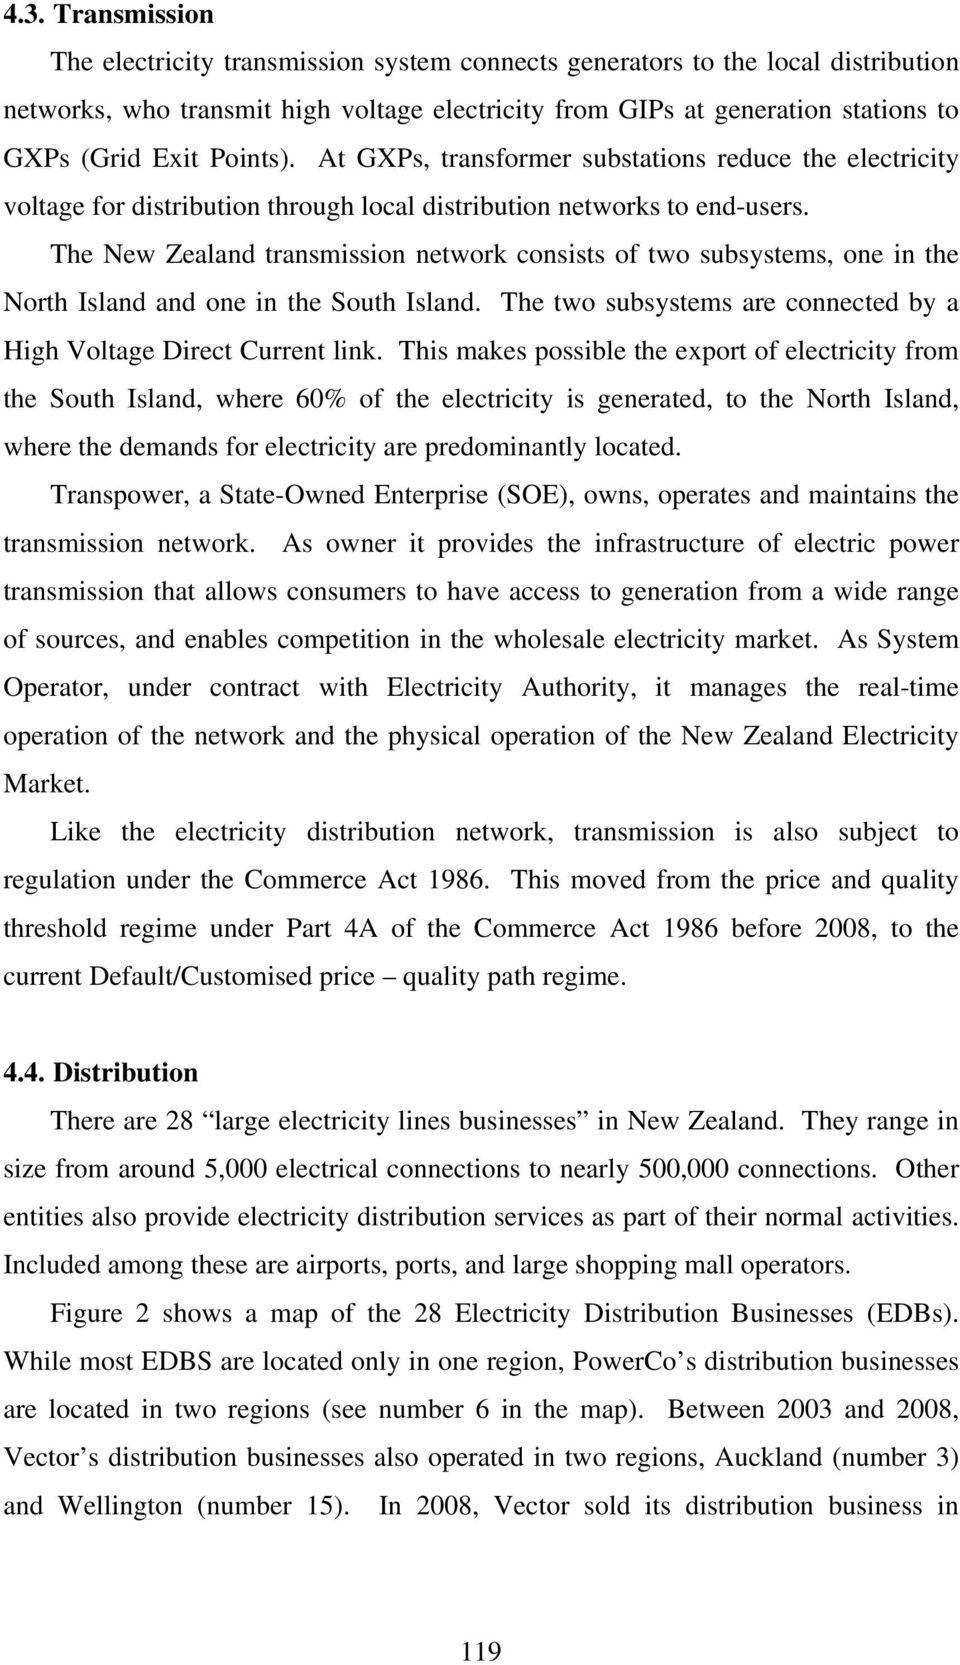 The New Zealand transmission network consists of two subsystems, one in the North Island and one in the South Island. The two subsystems are connected by a High Voltage Direct Current link.